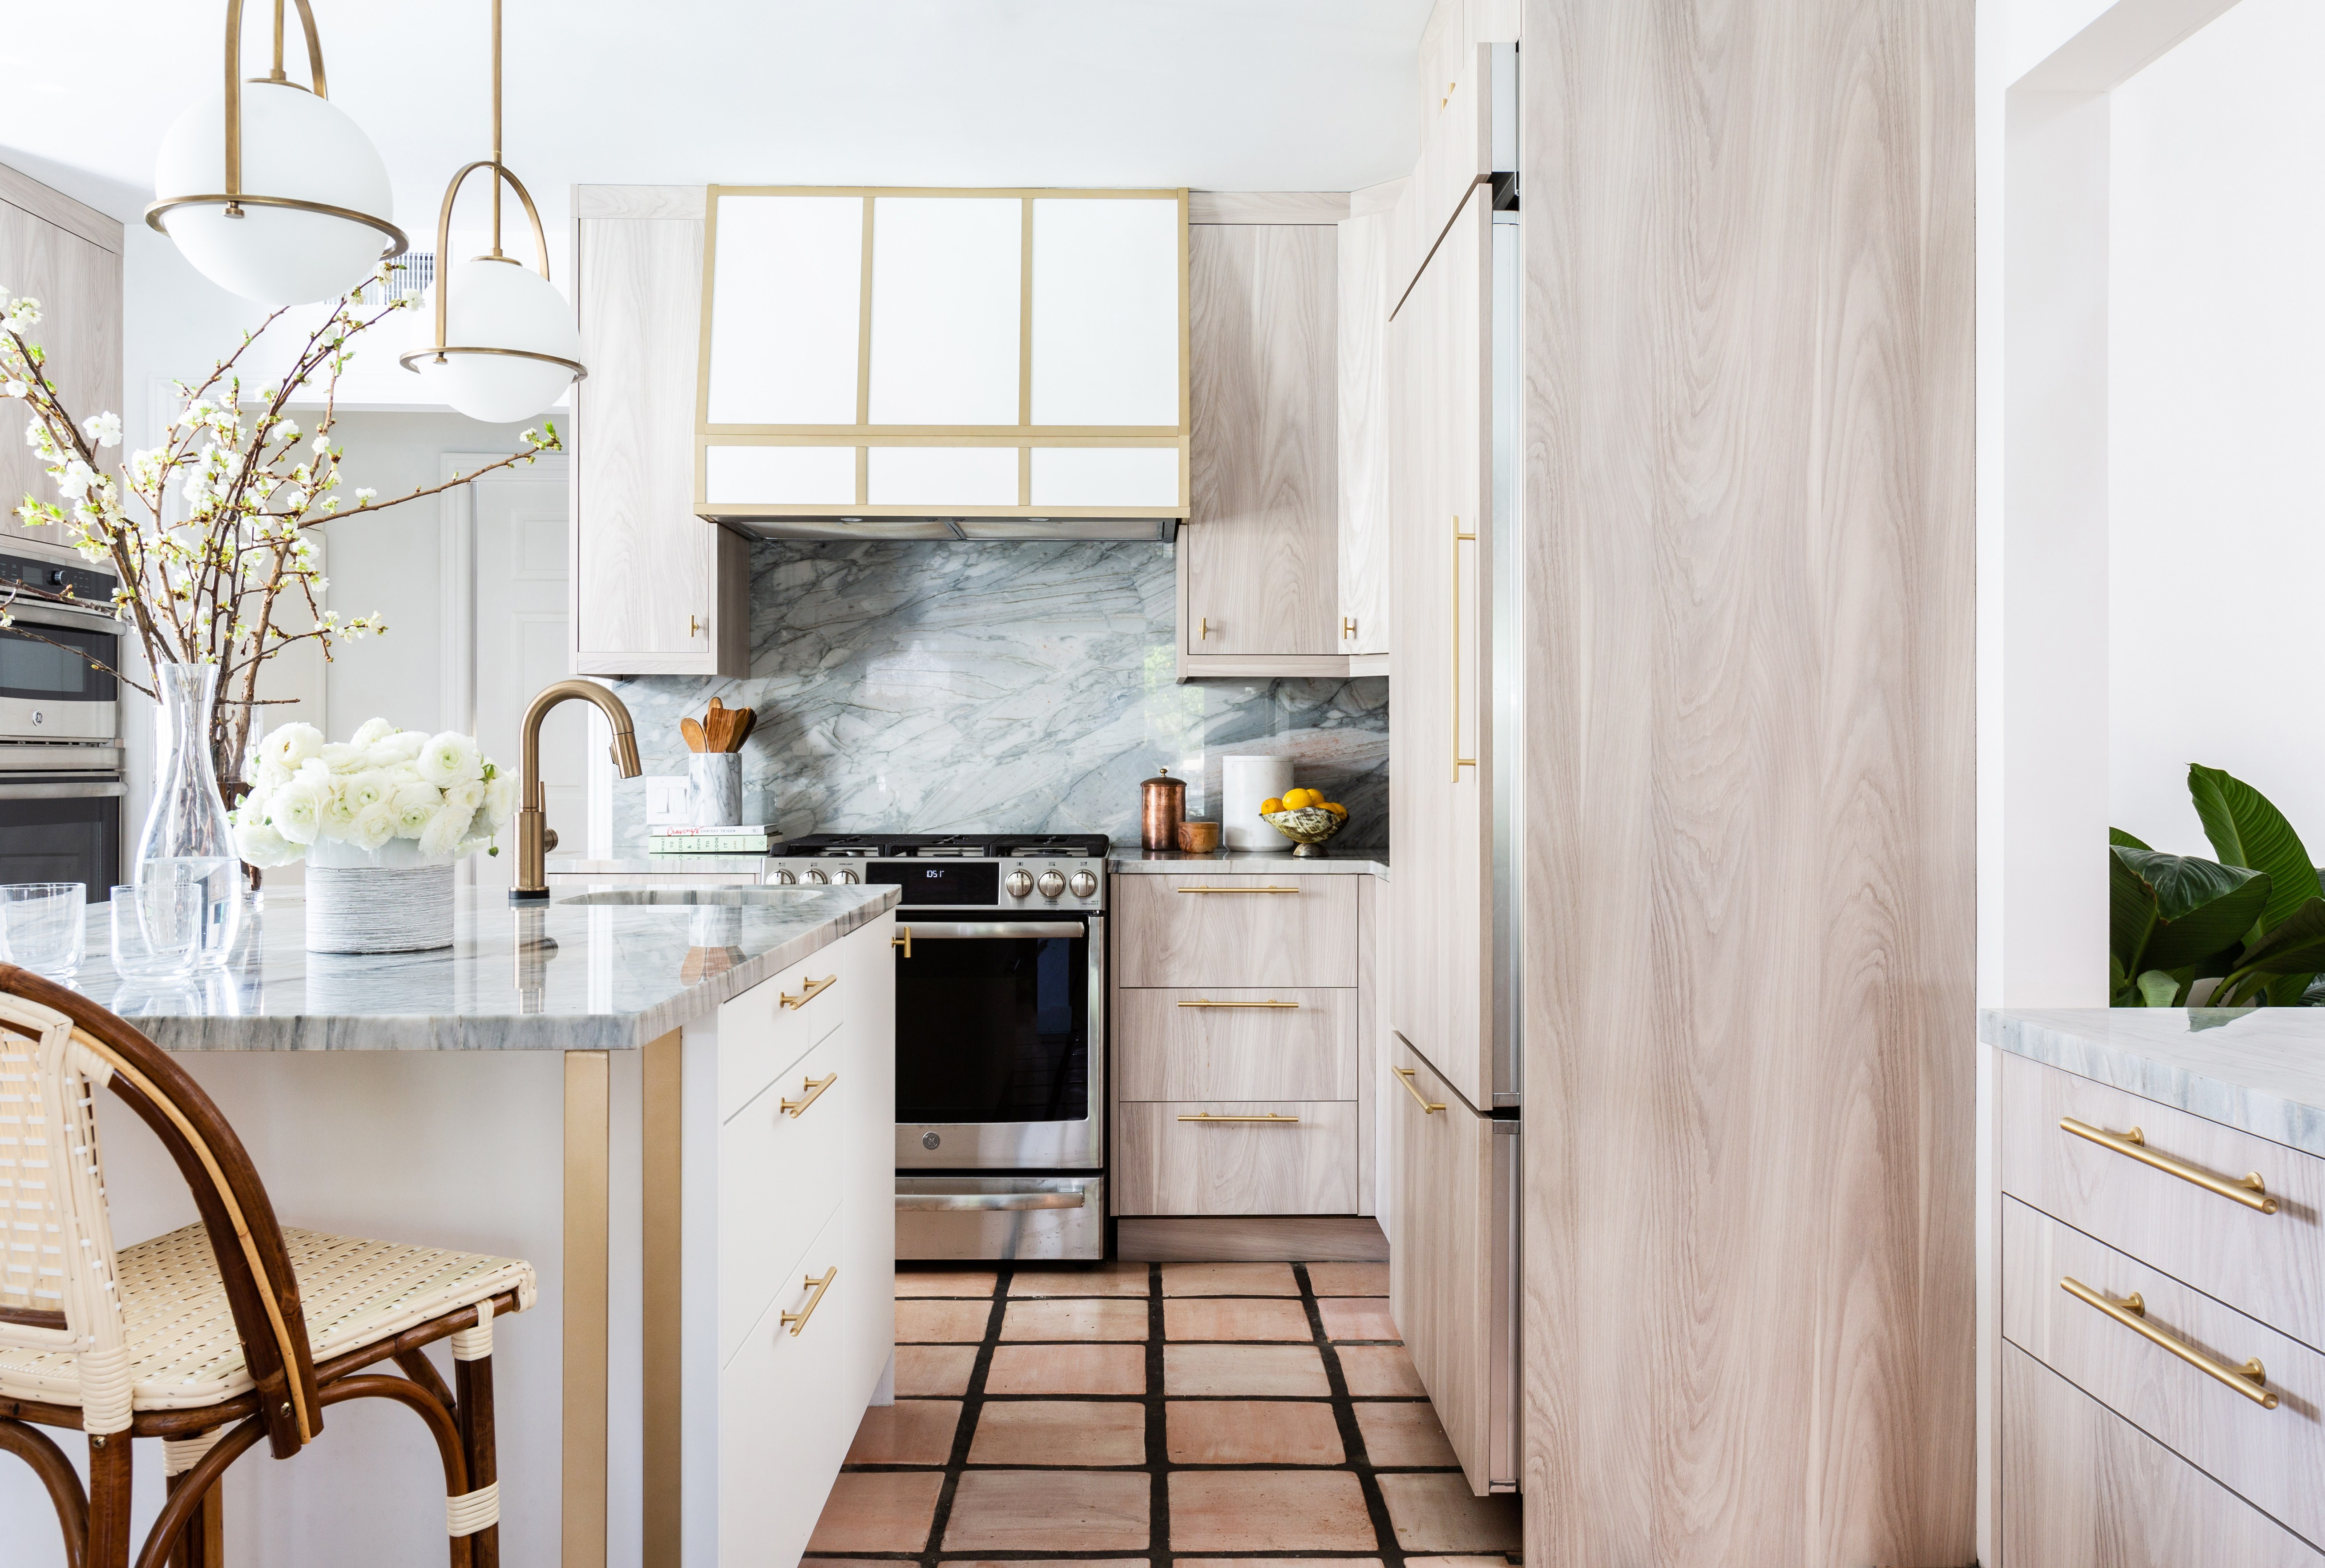 5 Natural Stone Trends To Try In 2019 D Magazine